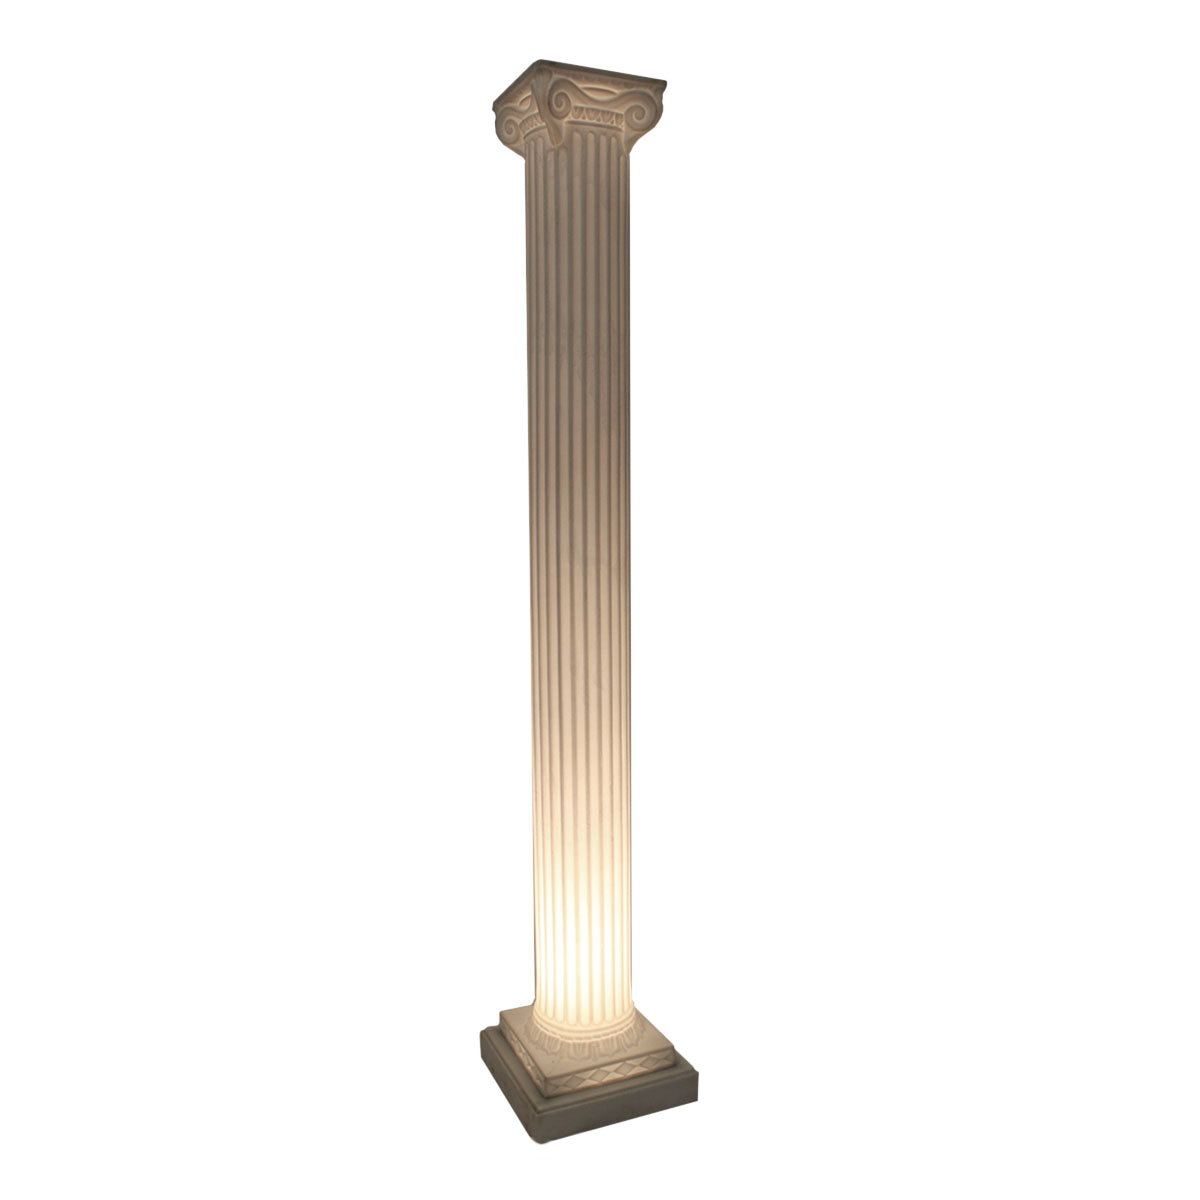 Light Base For Columns